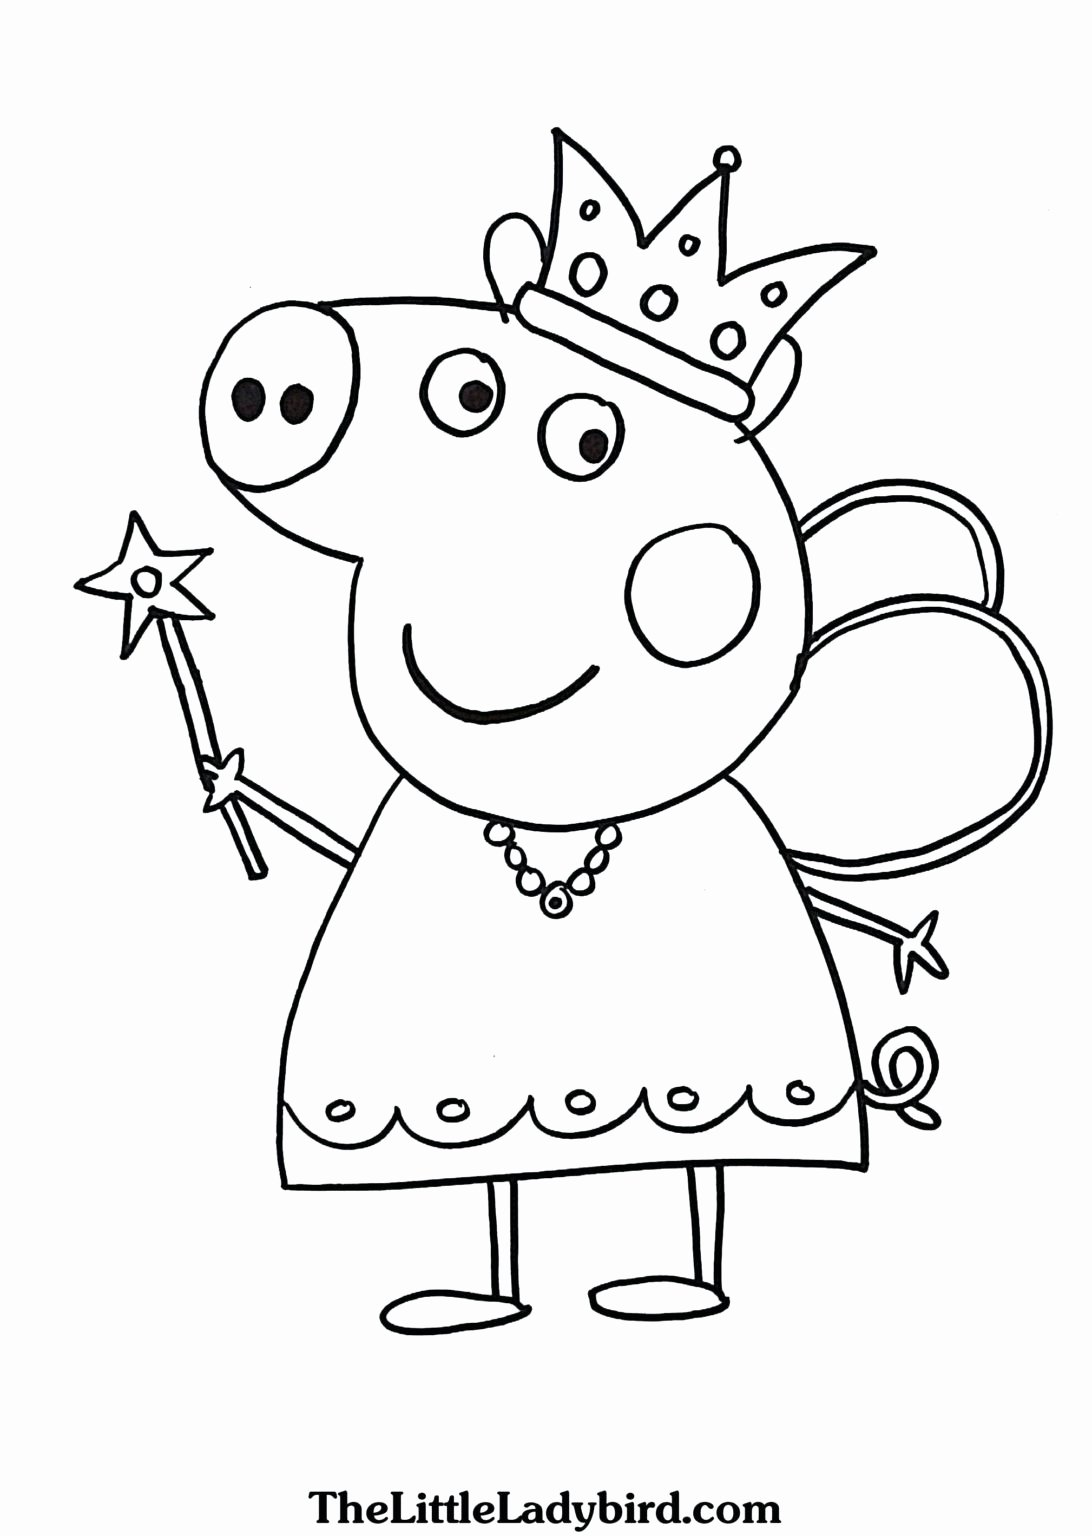 Free Colouring Worksheets for Preschoolers Fresh Freeing Printables for toddlers Kids Teens Worksheets